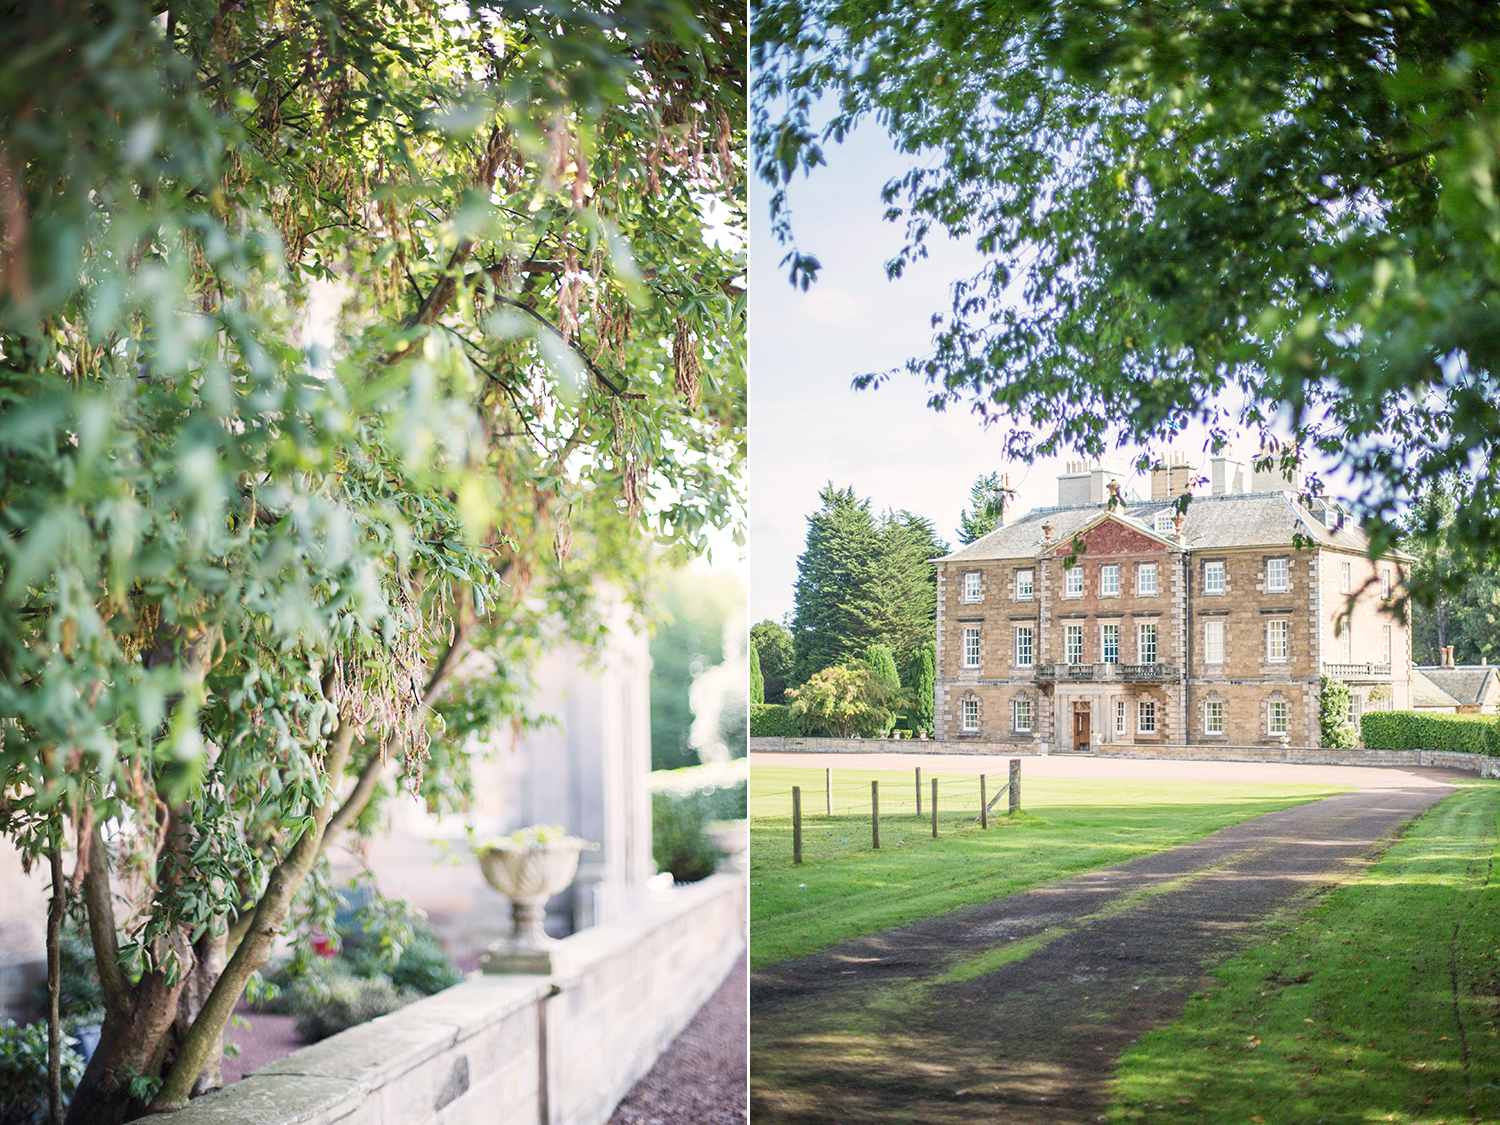 gilmerton-house-wedding-venue